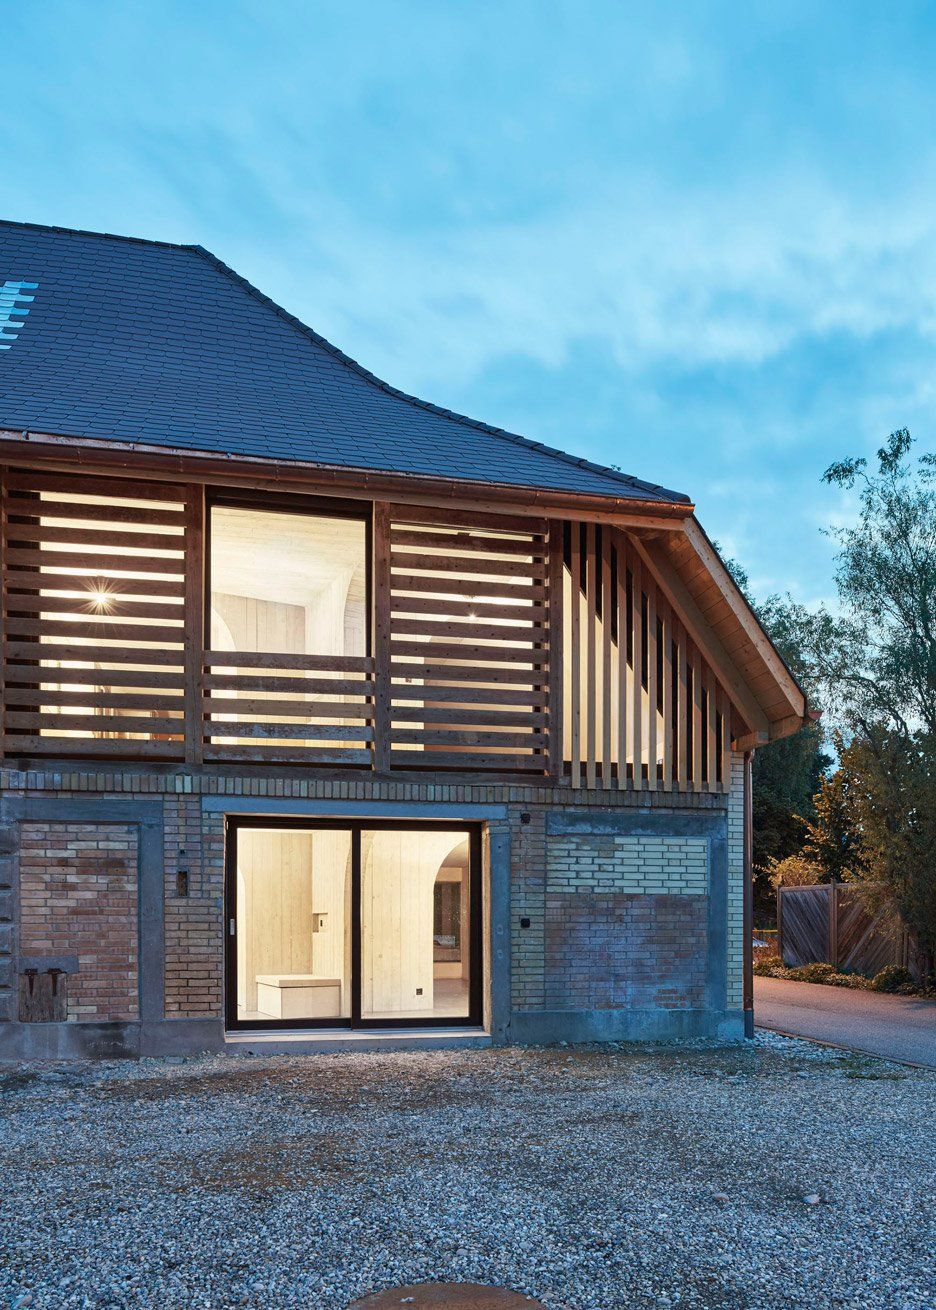 Freiluft Barn Conversion By Martin Klopfenstein Stone Shed In 2019 Rustic Houses Exterior Barn Renovation Barn